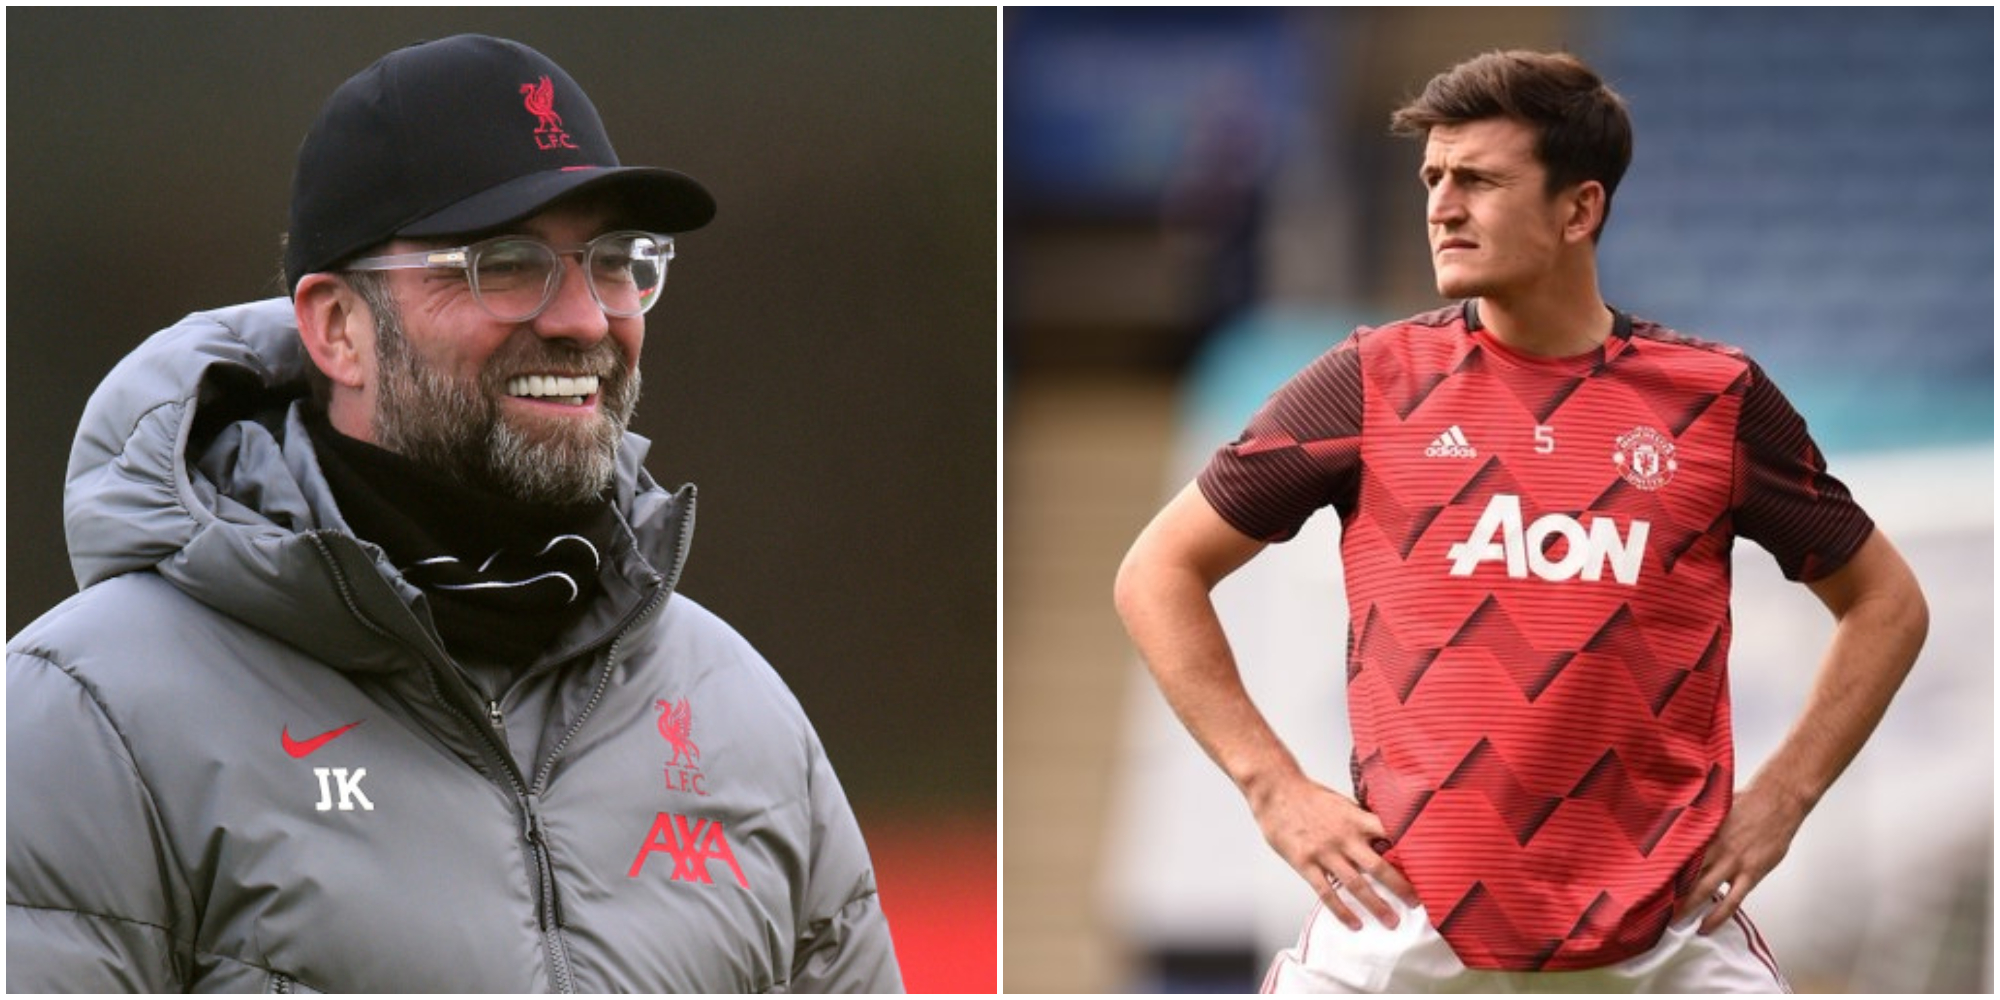 Maguire insinuates Klopp partly responsible for United's changed relationship with referees